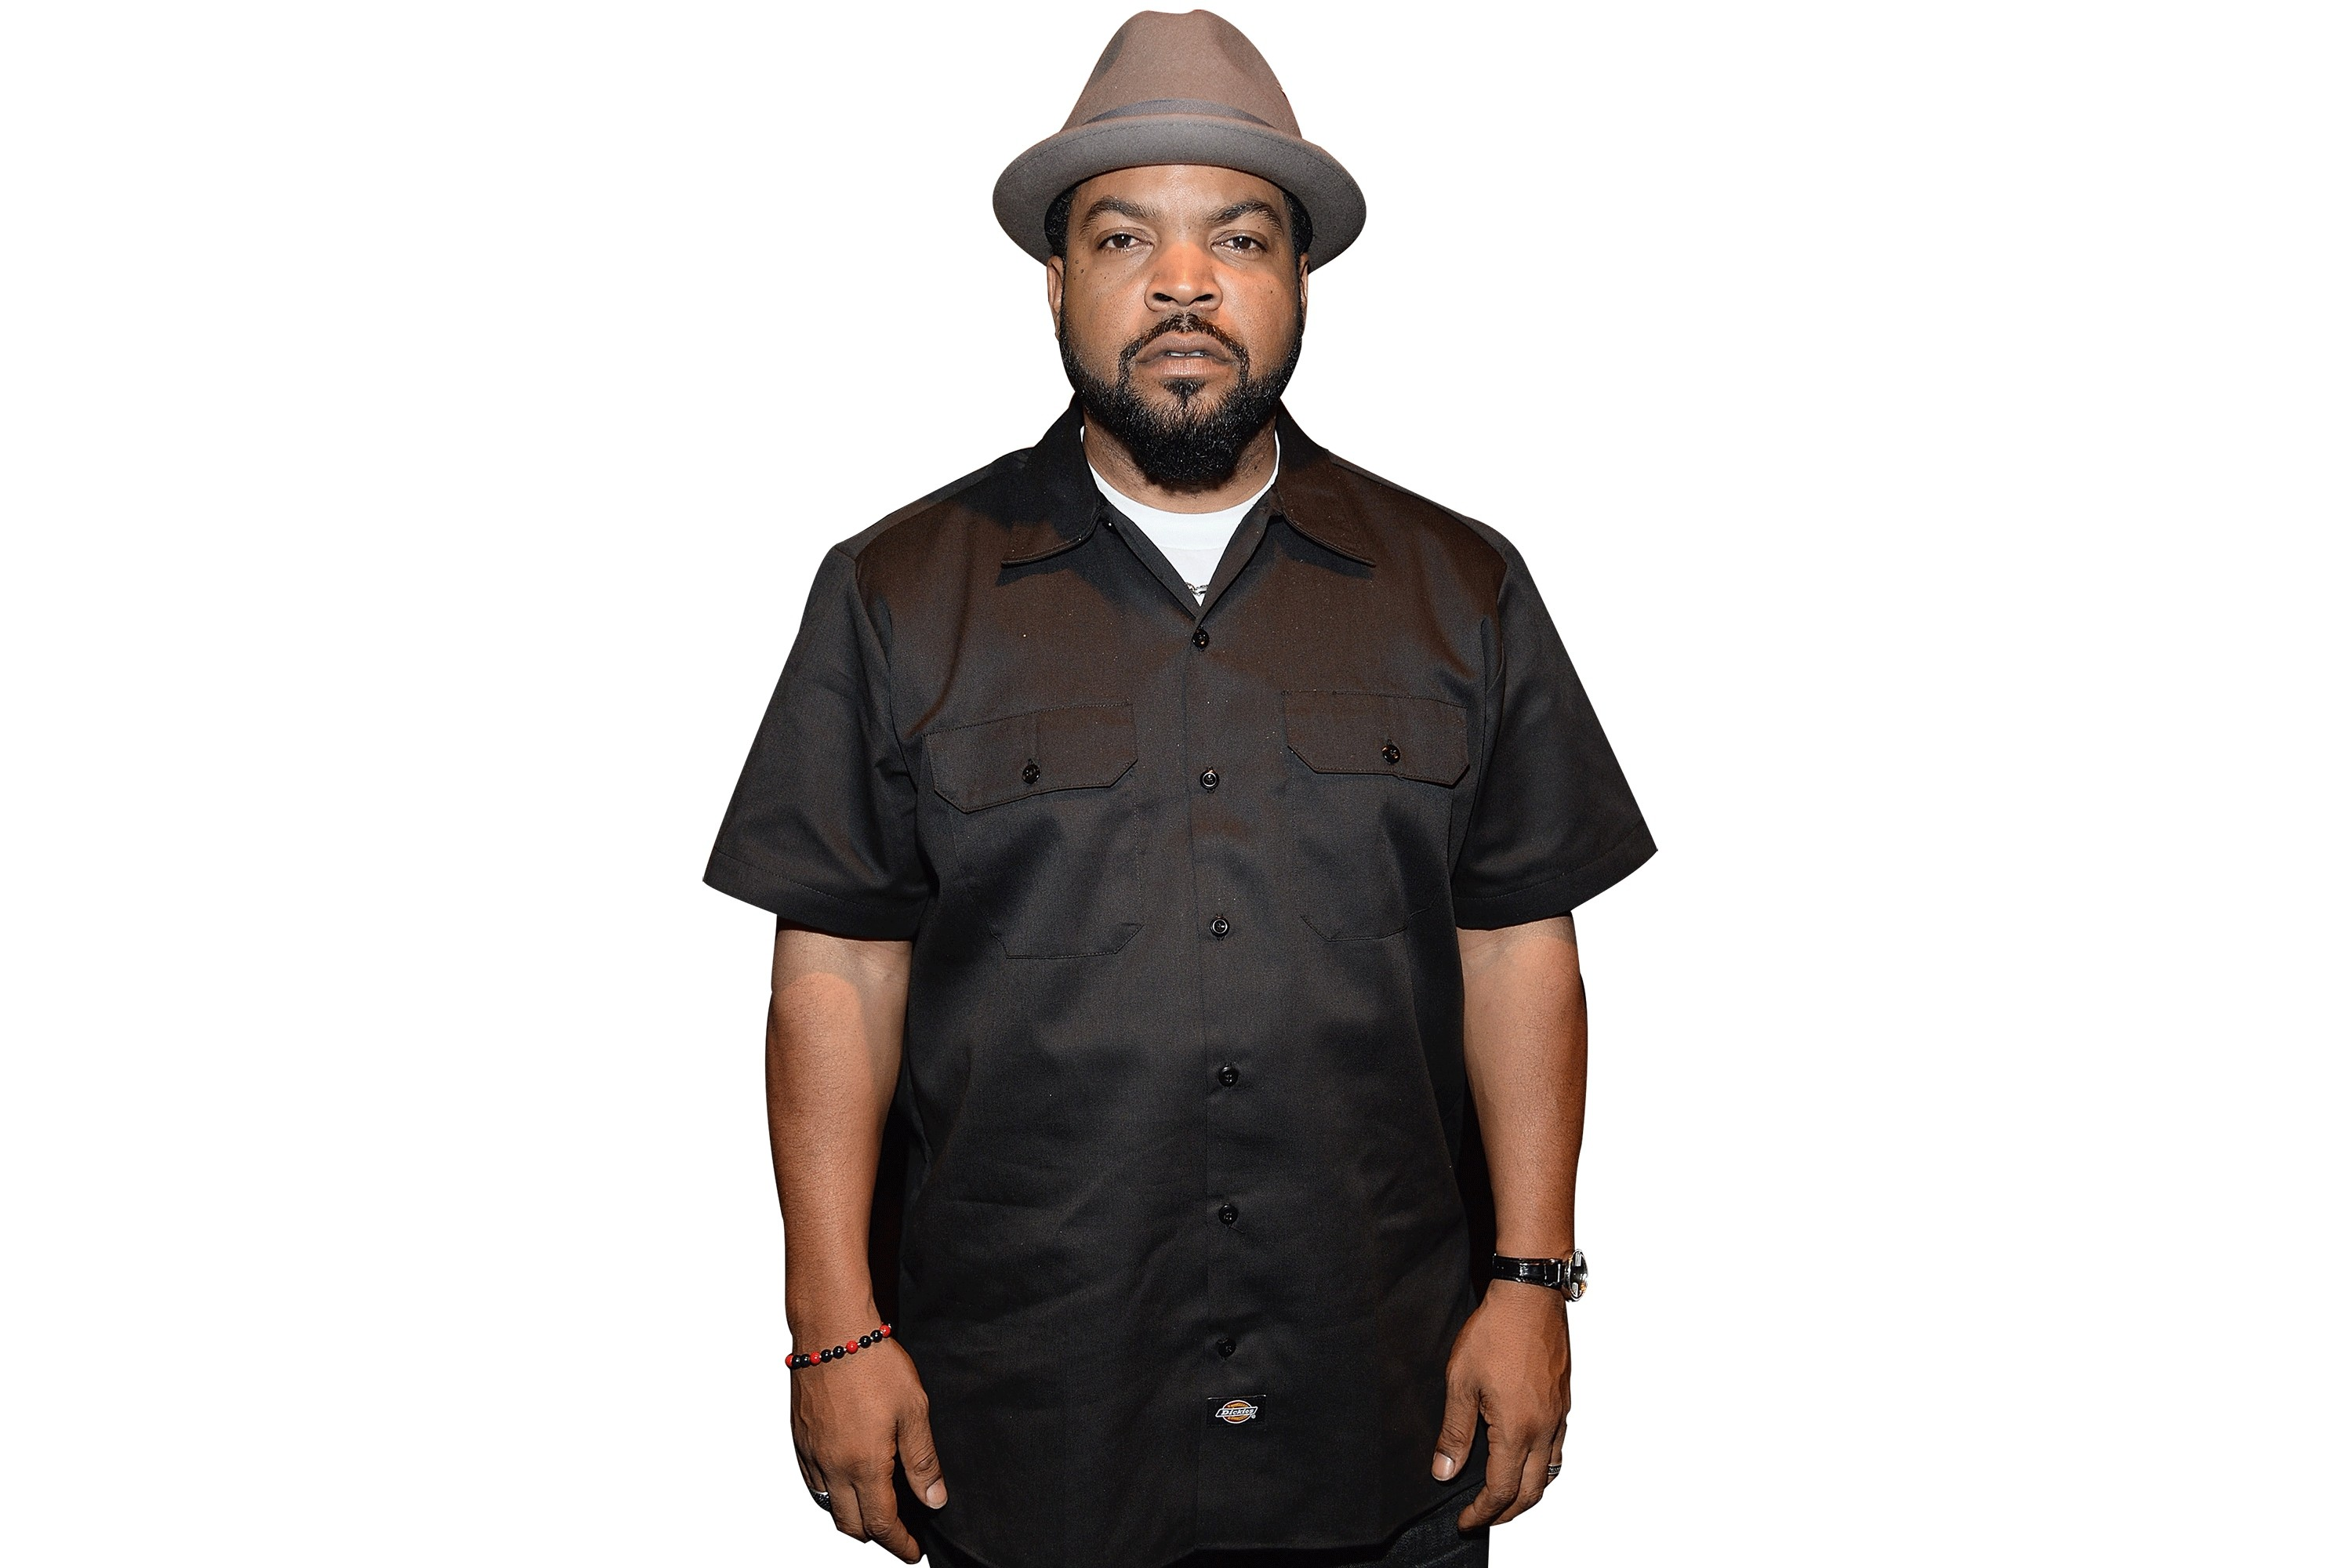 Ice Cube Wallpapers